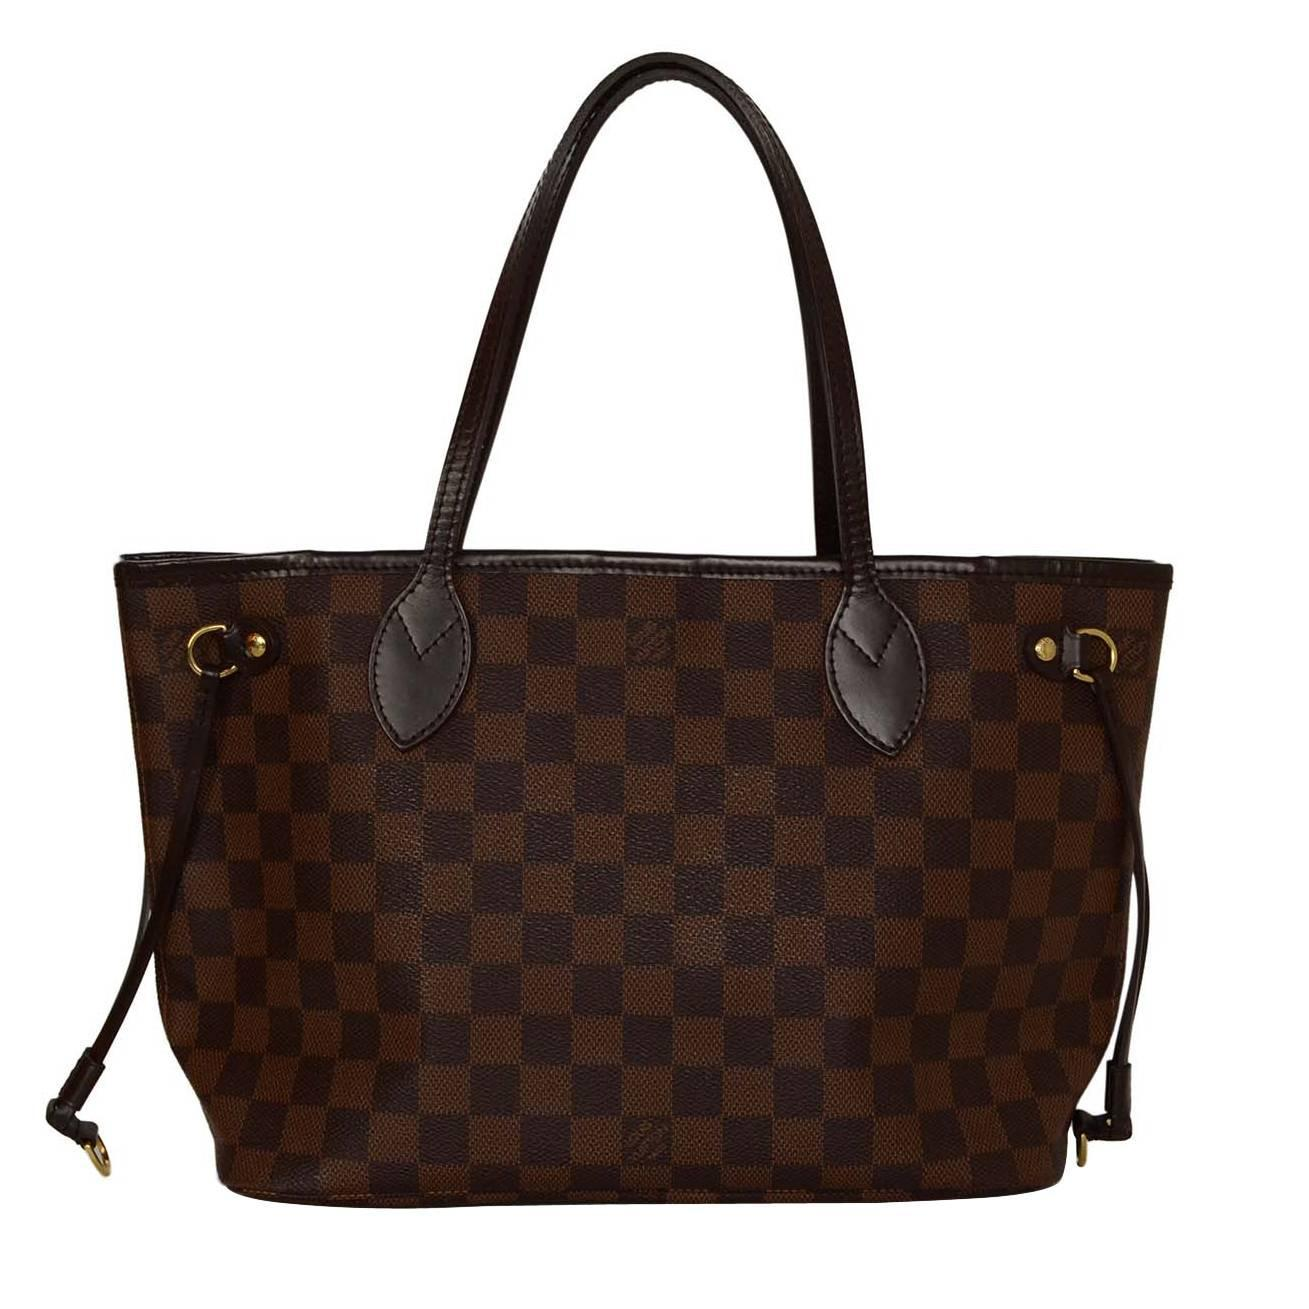 louis vuitton damier coated canvas neverfull pm tote bag at 1stdibs. Black Bedroom Furniture Sets. Home Design Ideas